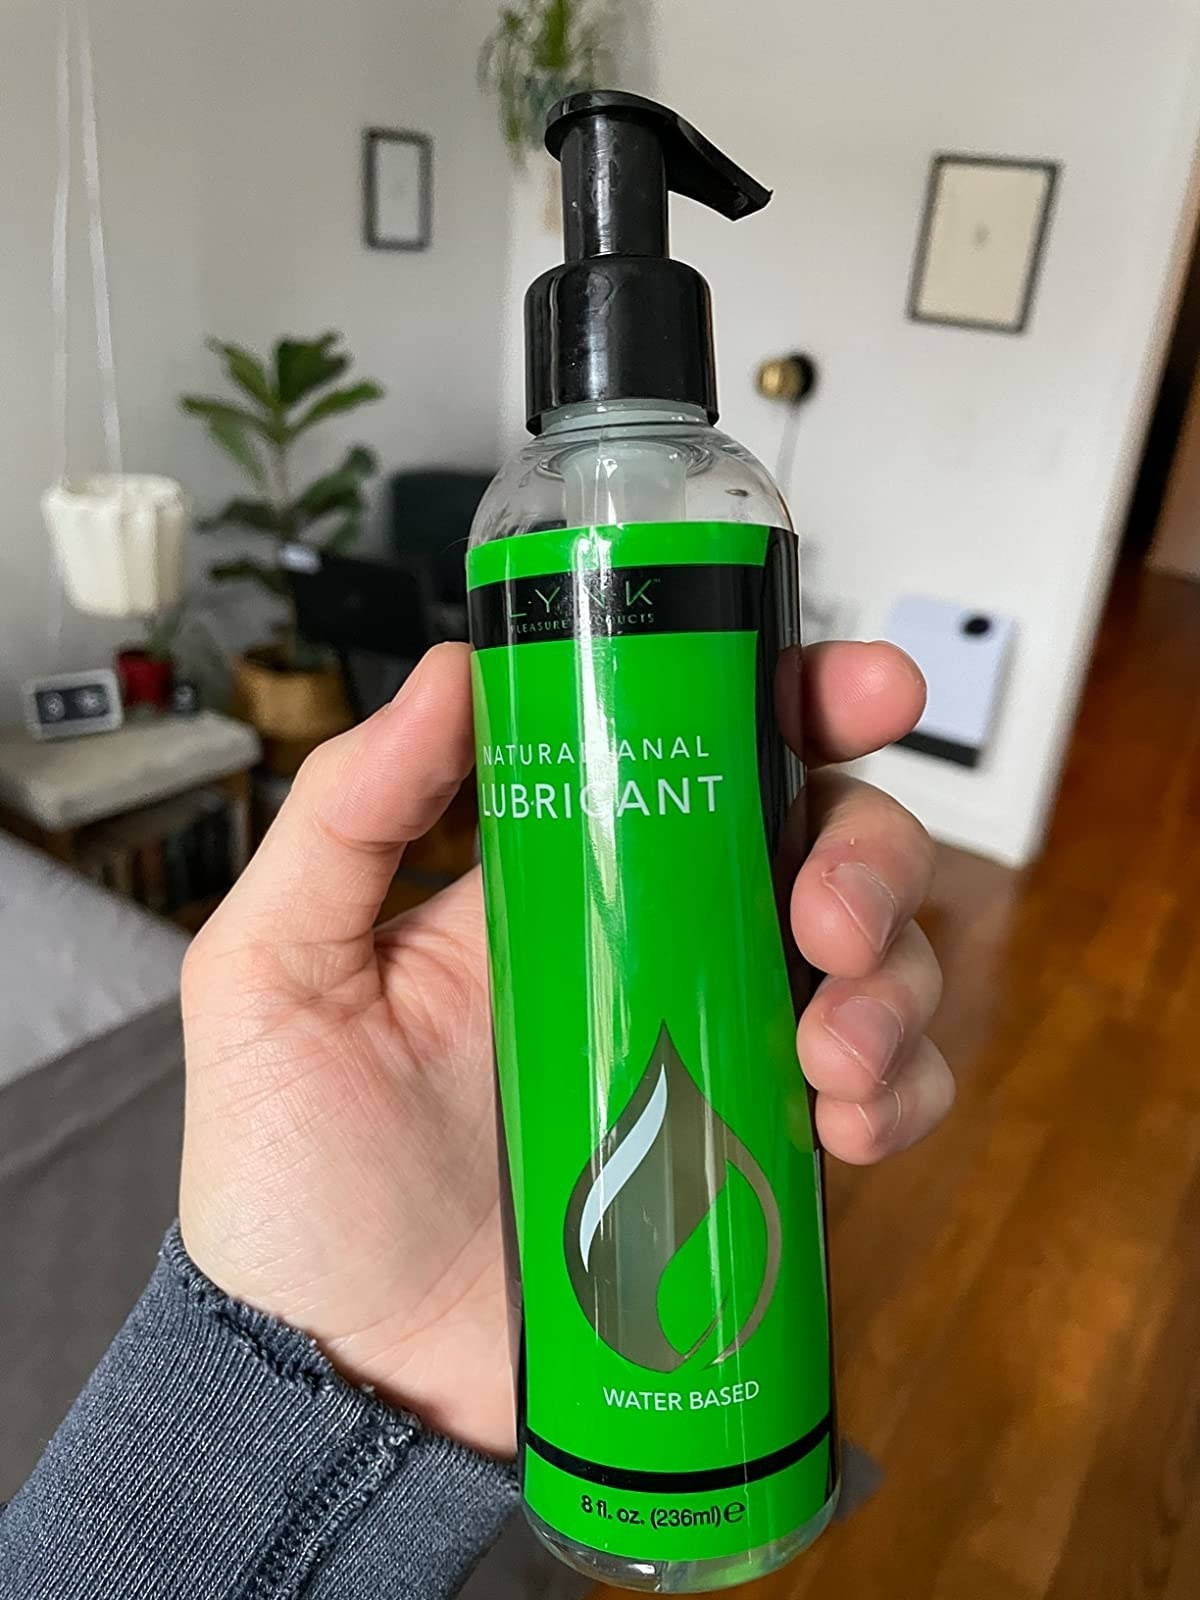 Model holding green bottle of Lynk personal lubricant